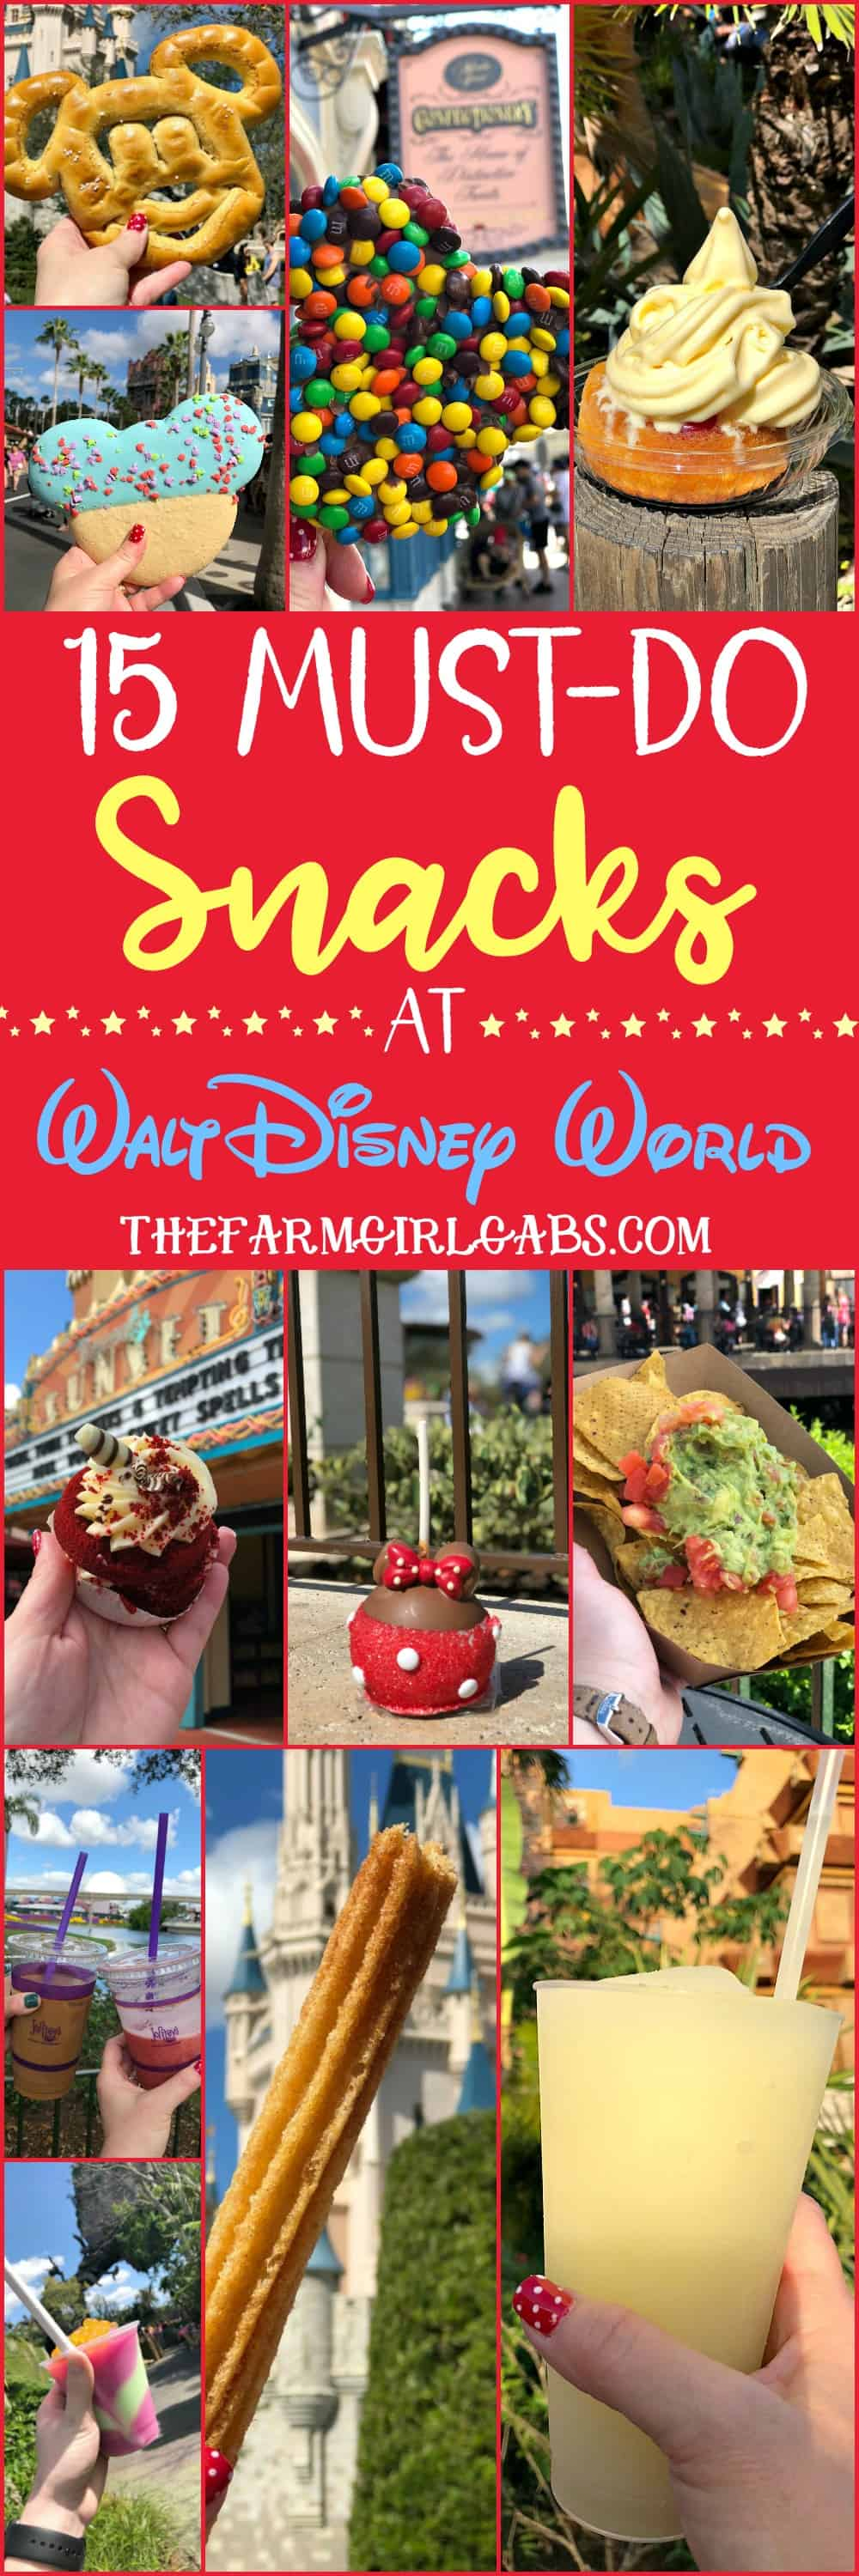 Eat your way around the happiest place on earth and try a few of these 15 Must Eat Snacks At Walt Disney World. Favorite Disney Snacks. #WaltDisneyWorld #DisneySMMC #Disney #DisneyFood #DisneySnacks